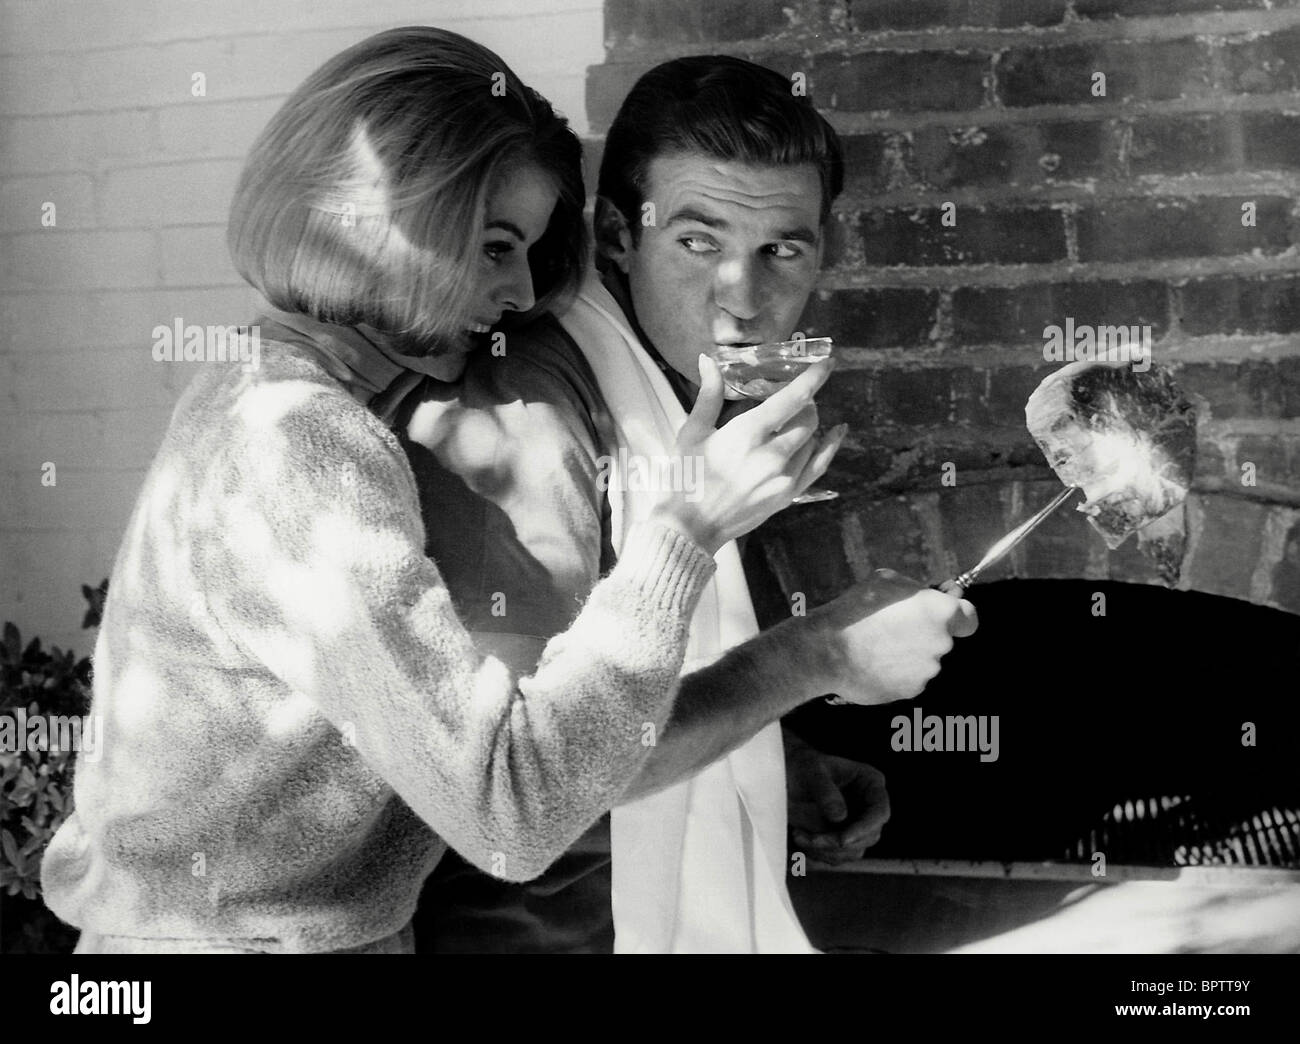 ROD TAYLOR & WOMAN ACTOR (1960) - Stock Image